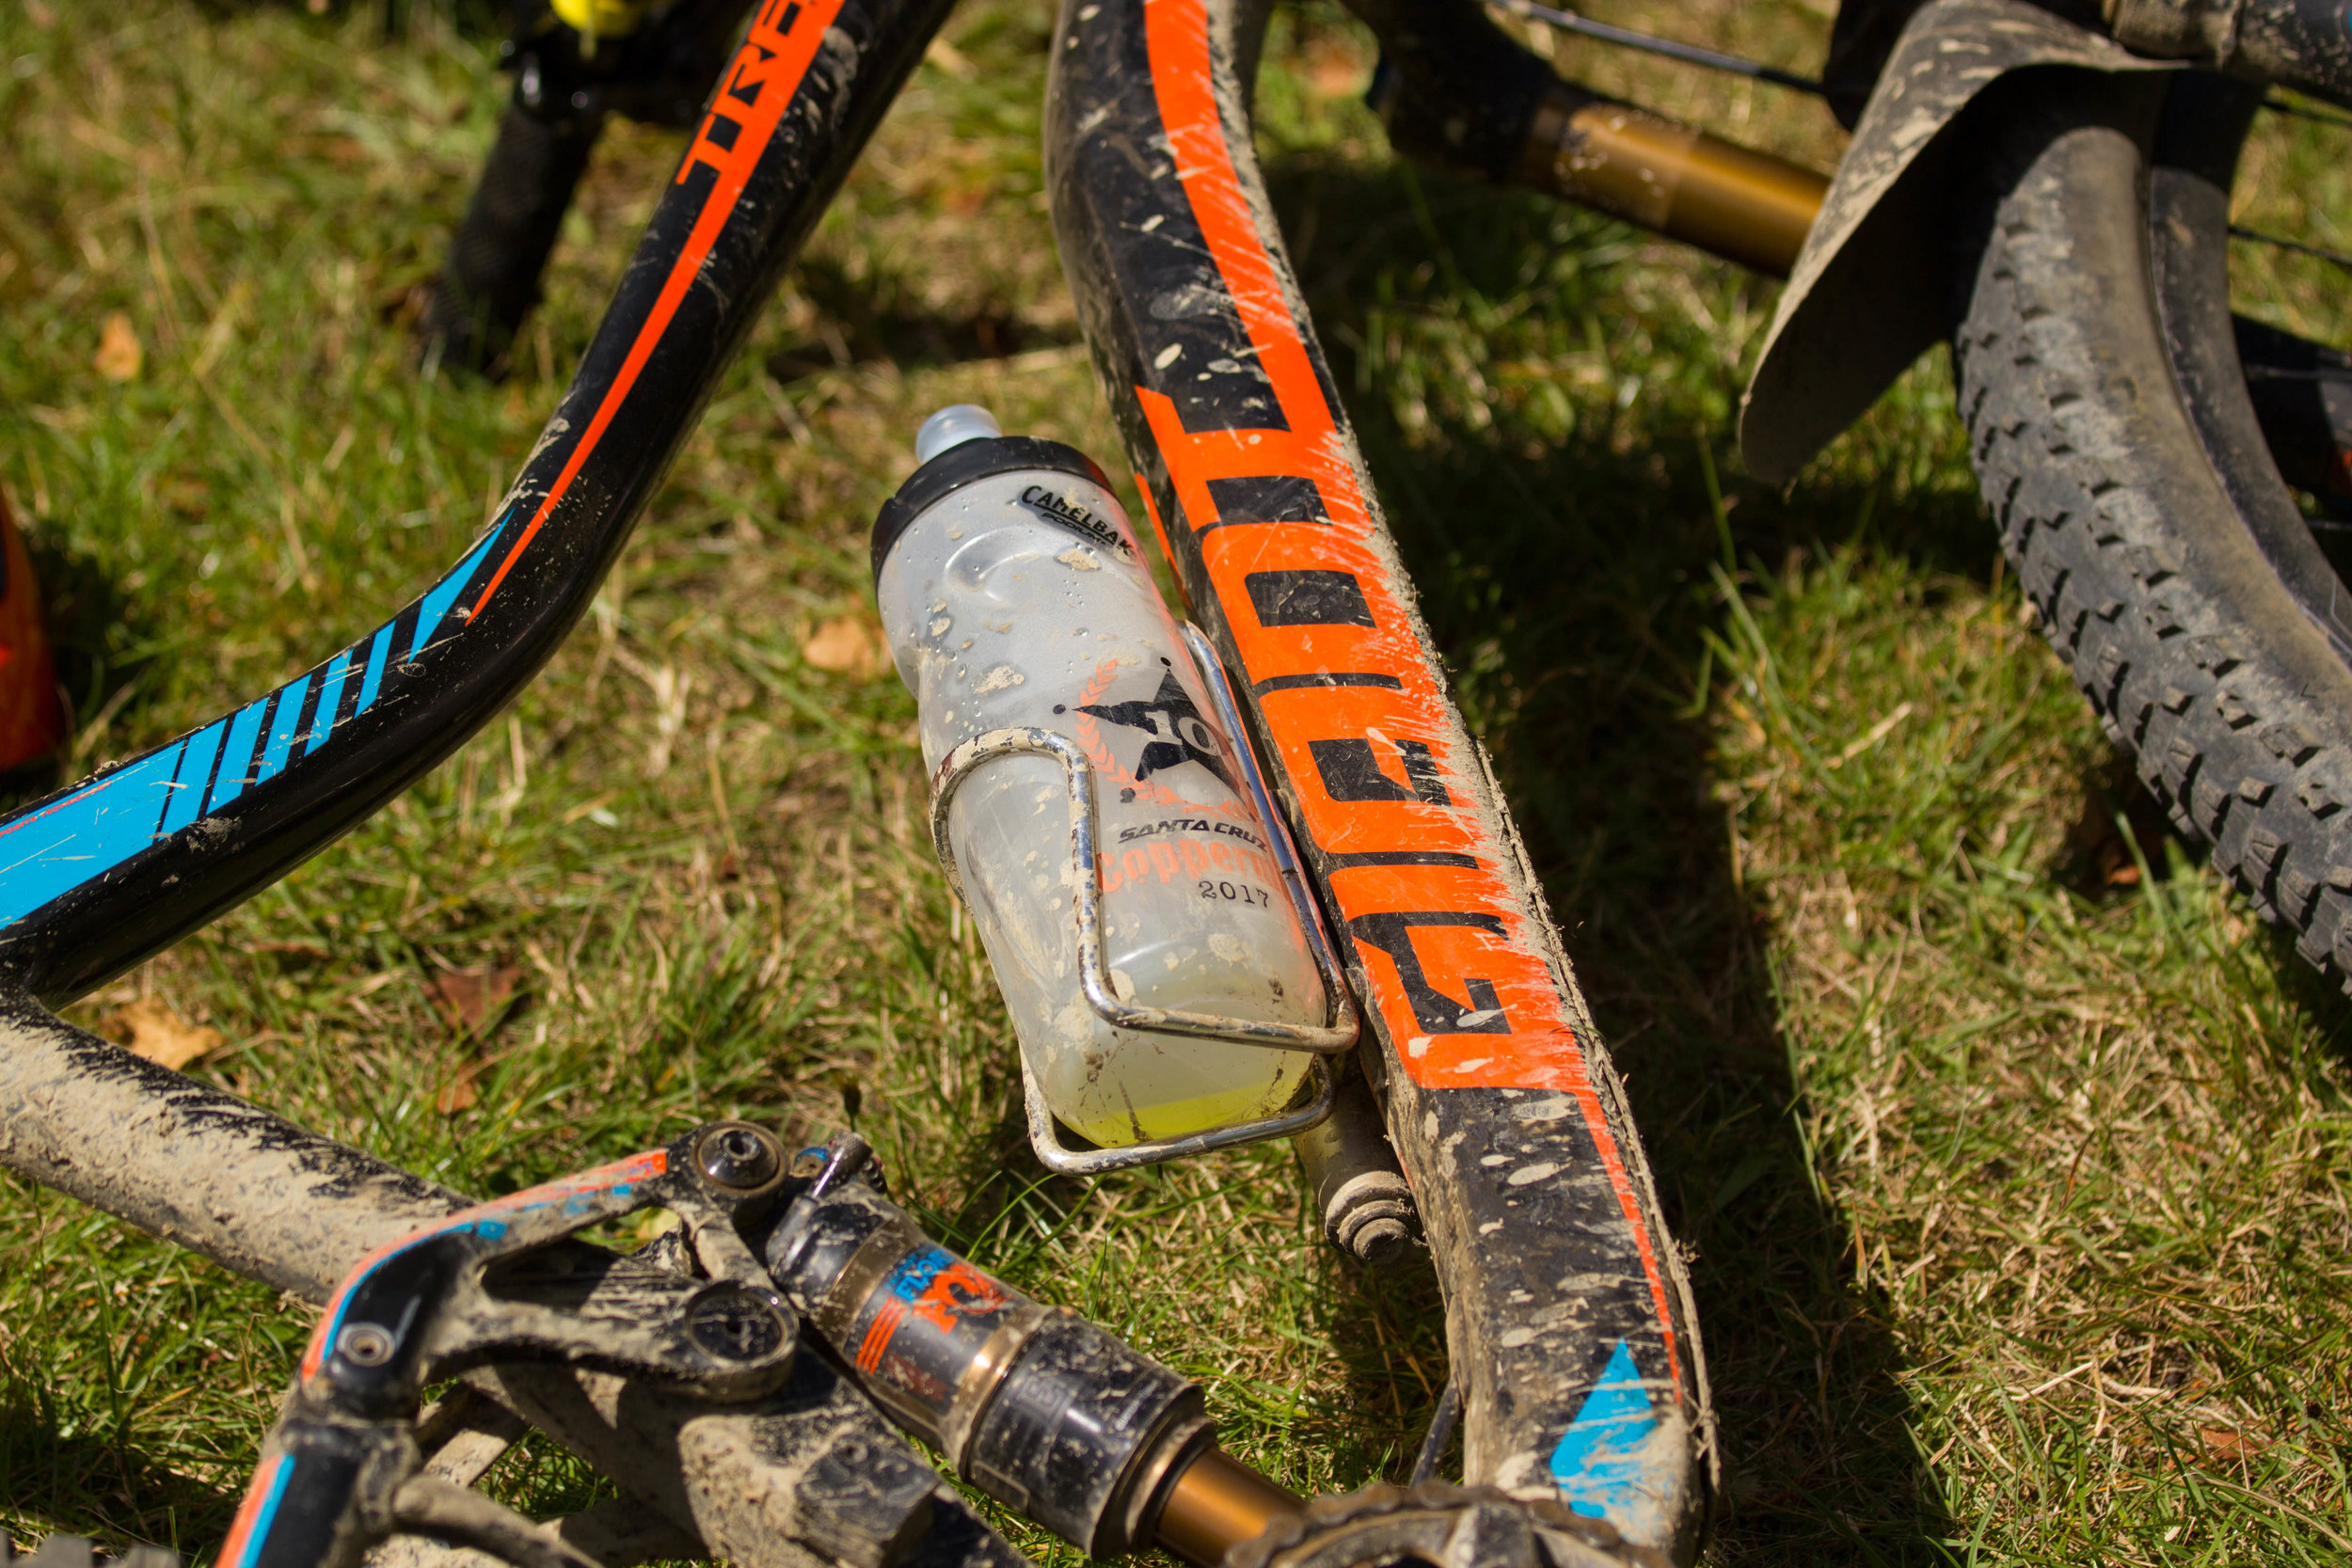 All riders received Camelbak 10th Anniversary water bottles